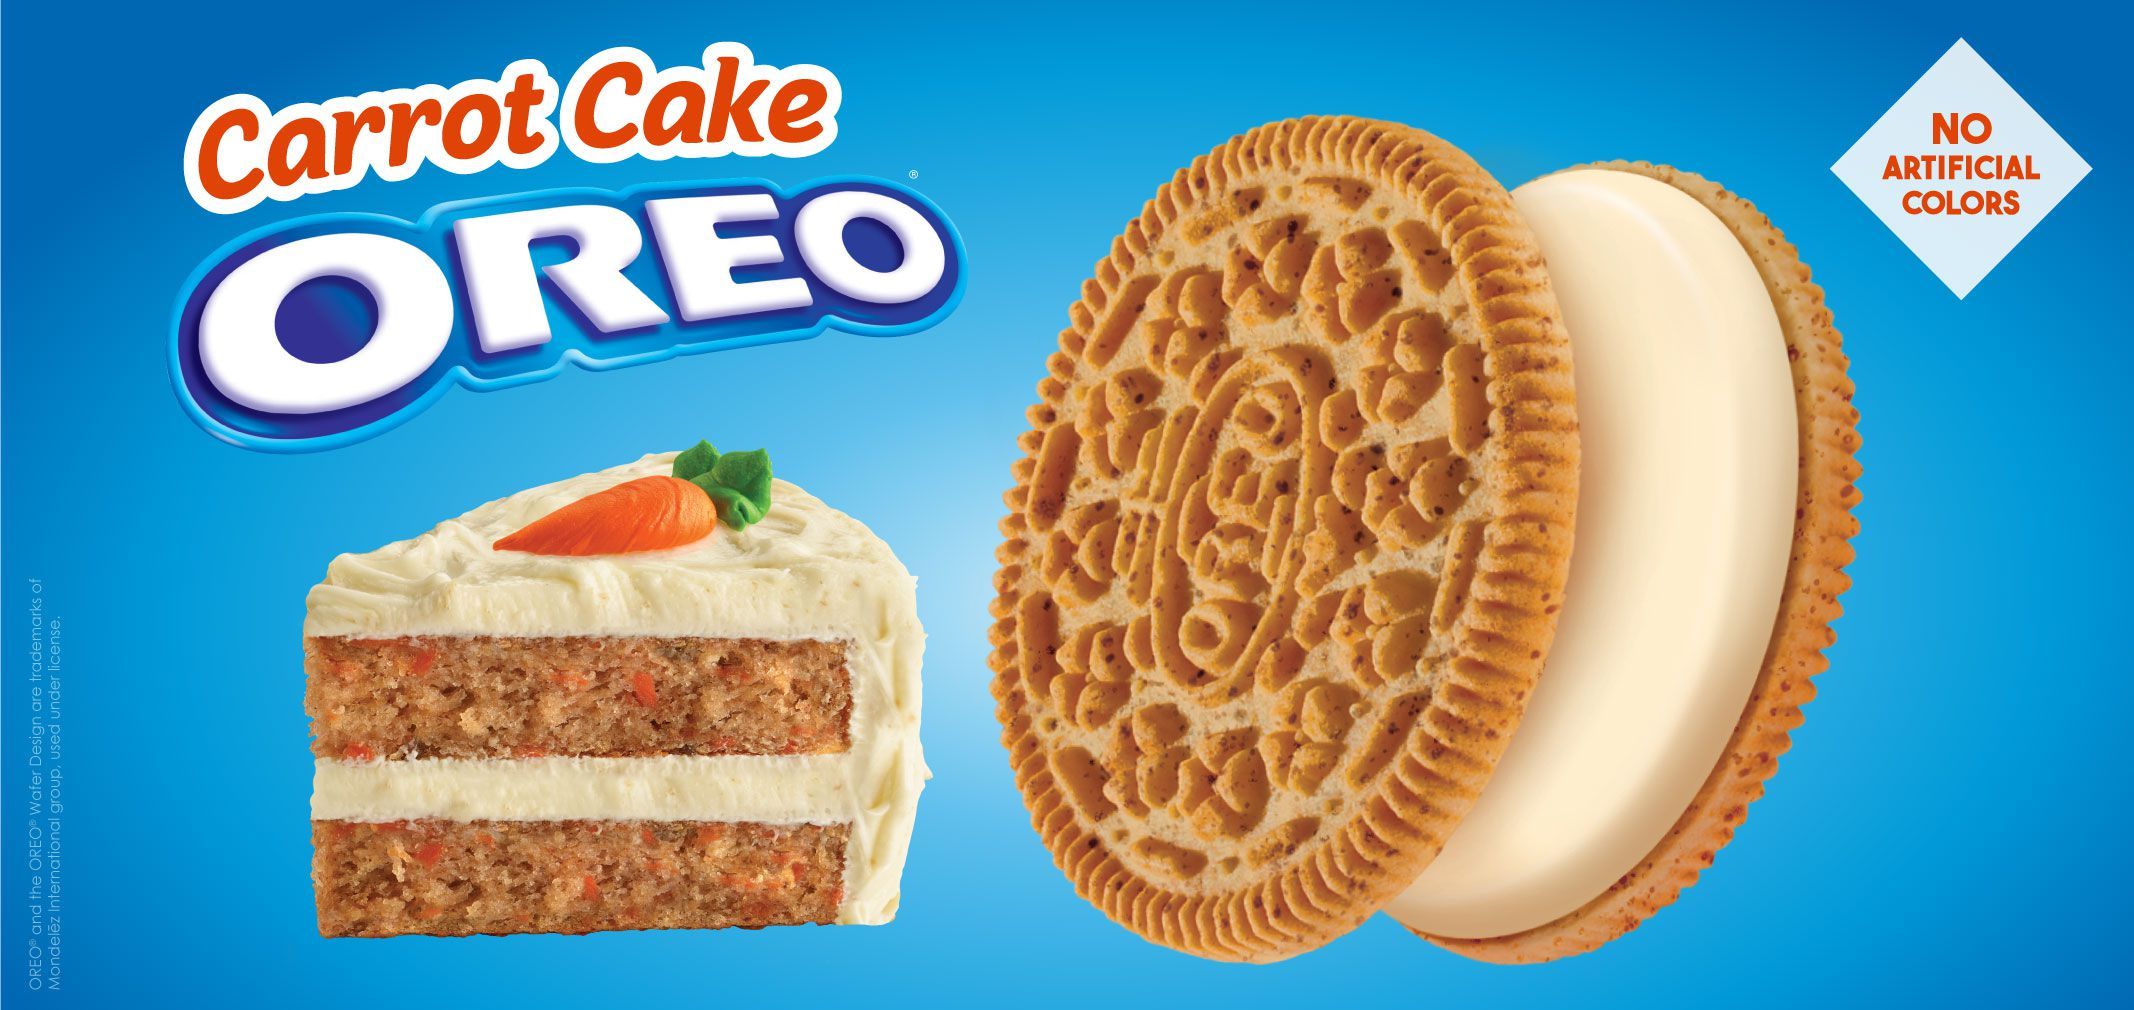 Carrot Cake Oreo Cookie label image